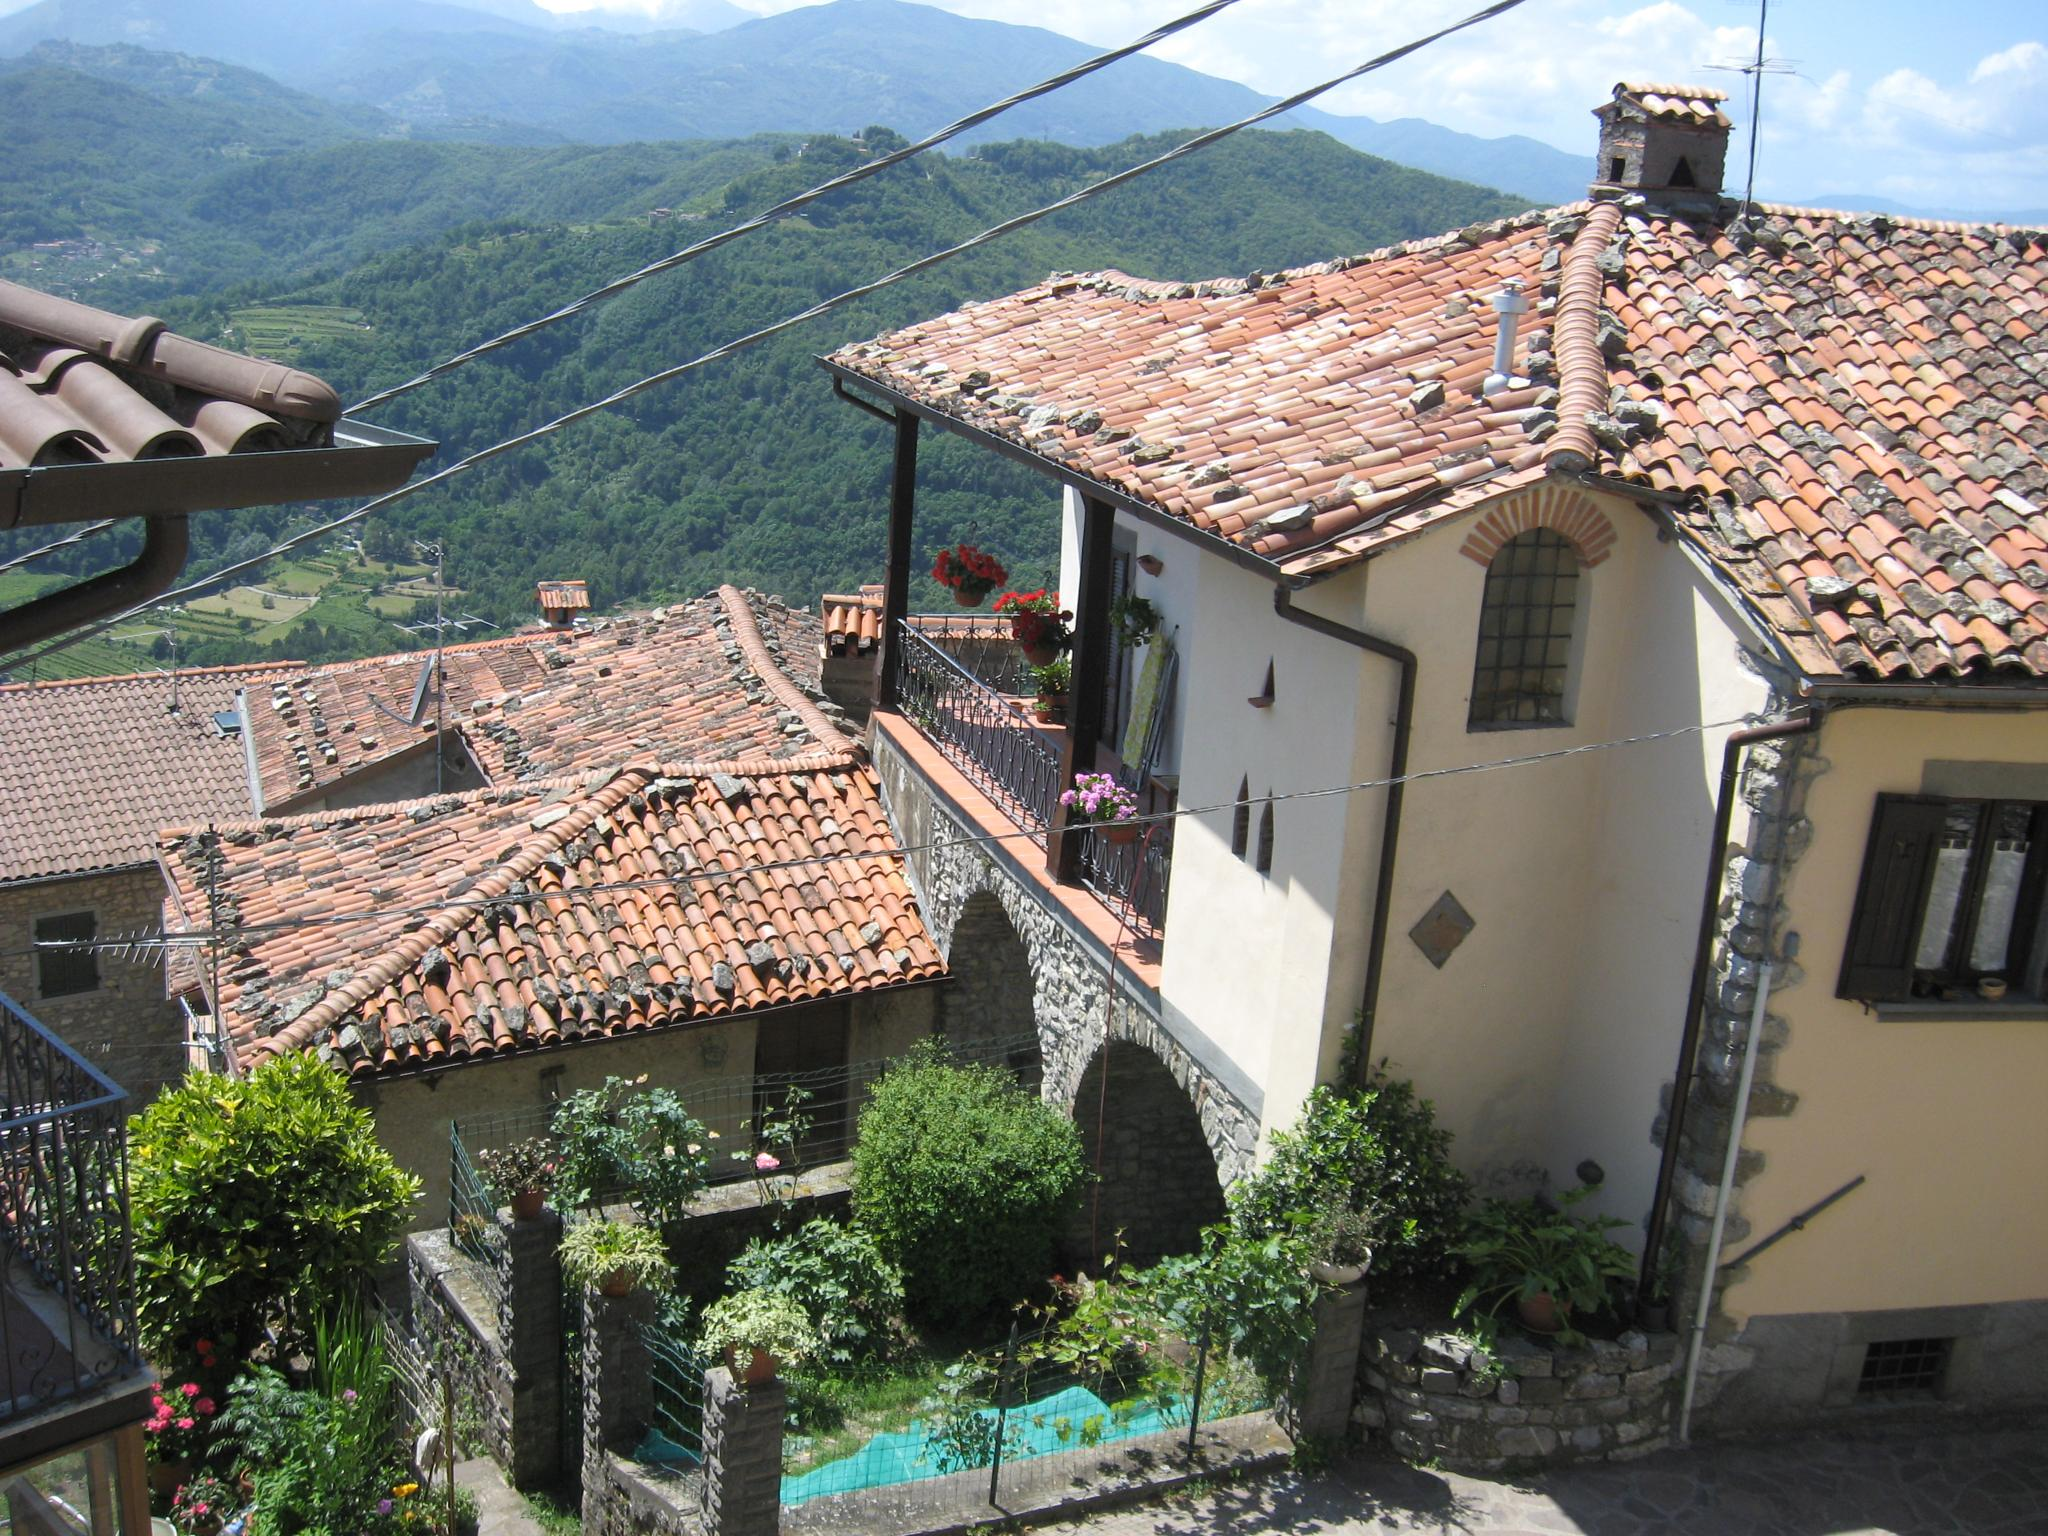 rooftops in toscana,Italy by doron